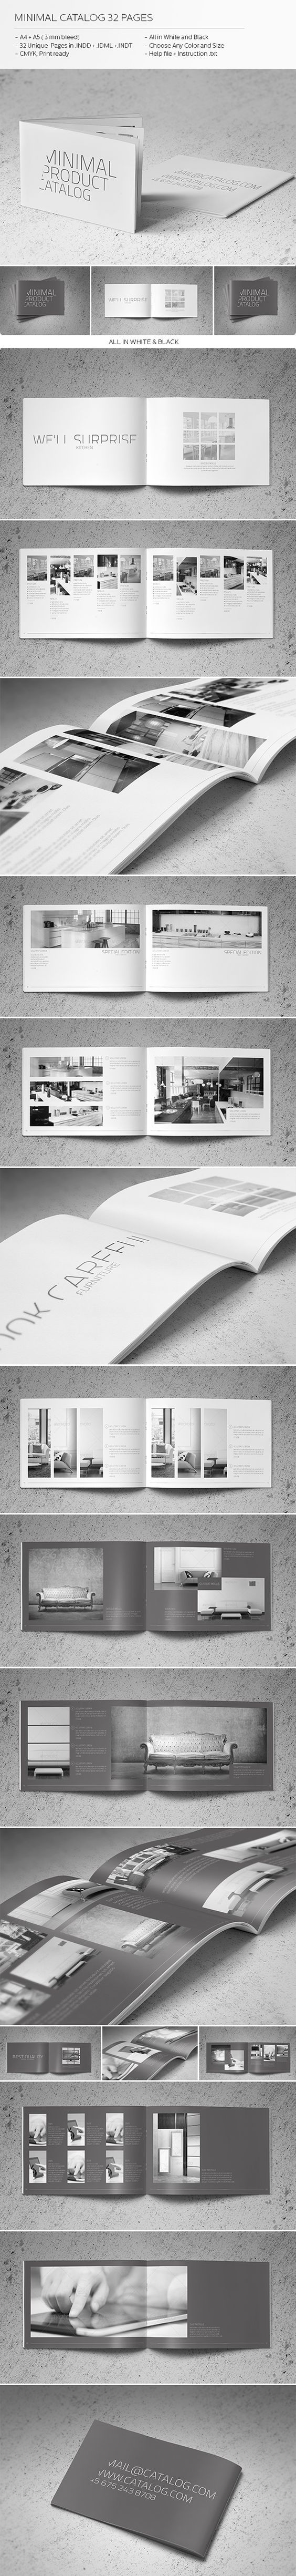 Minimal Catalog 32 Pages by Realstar , via Behance: More